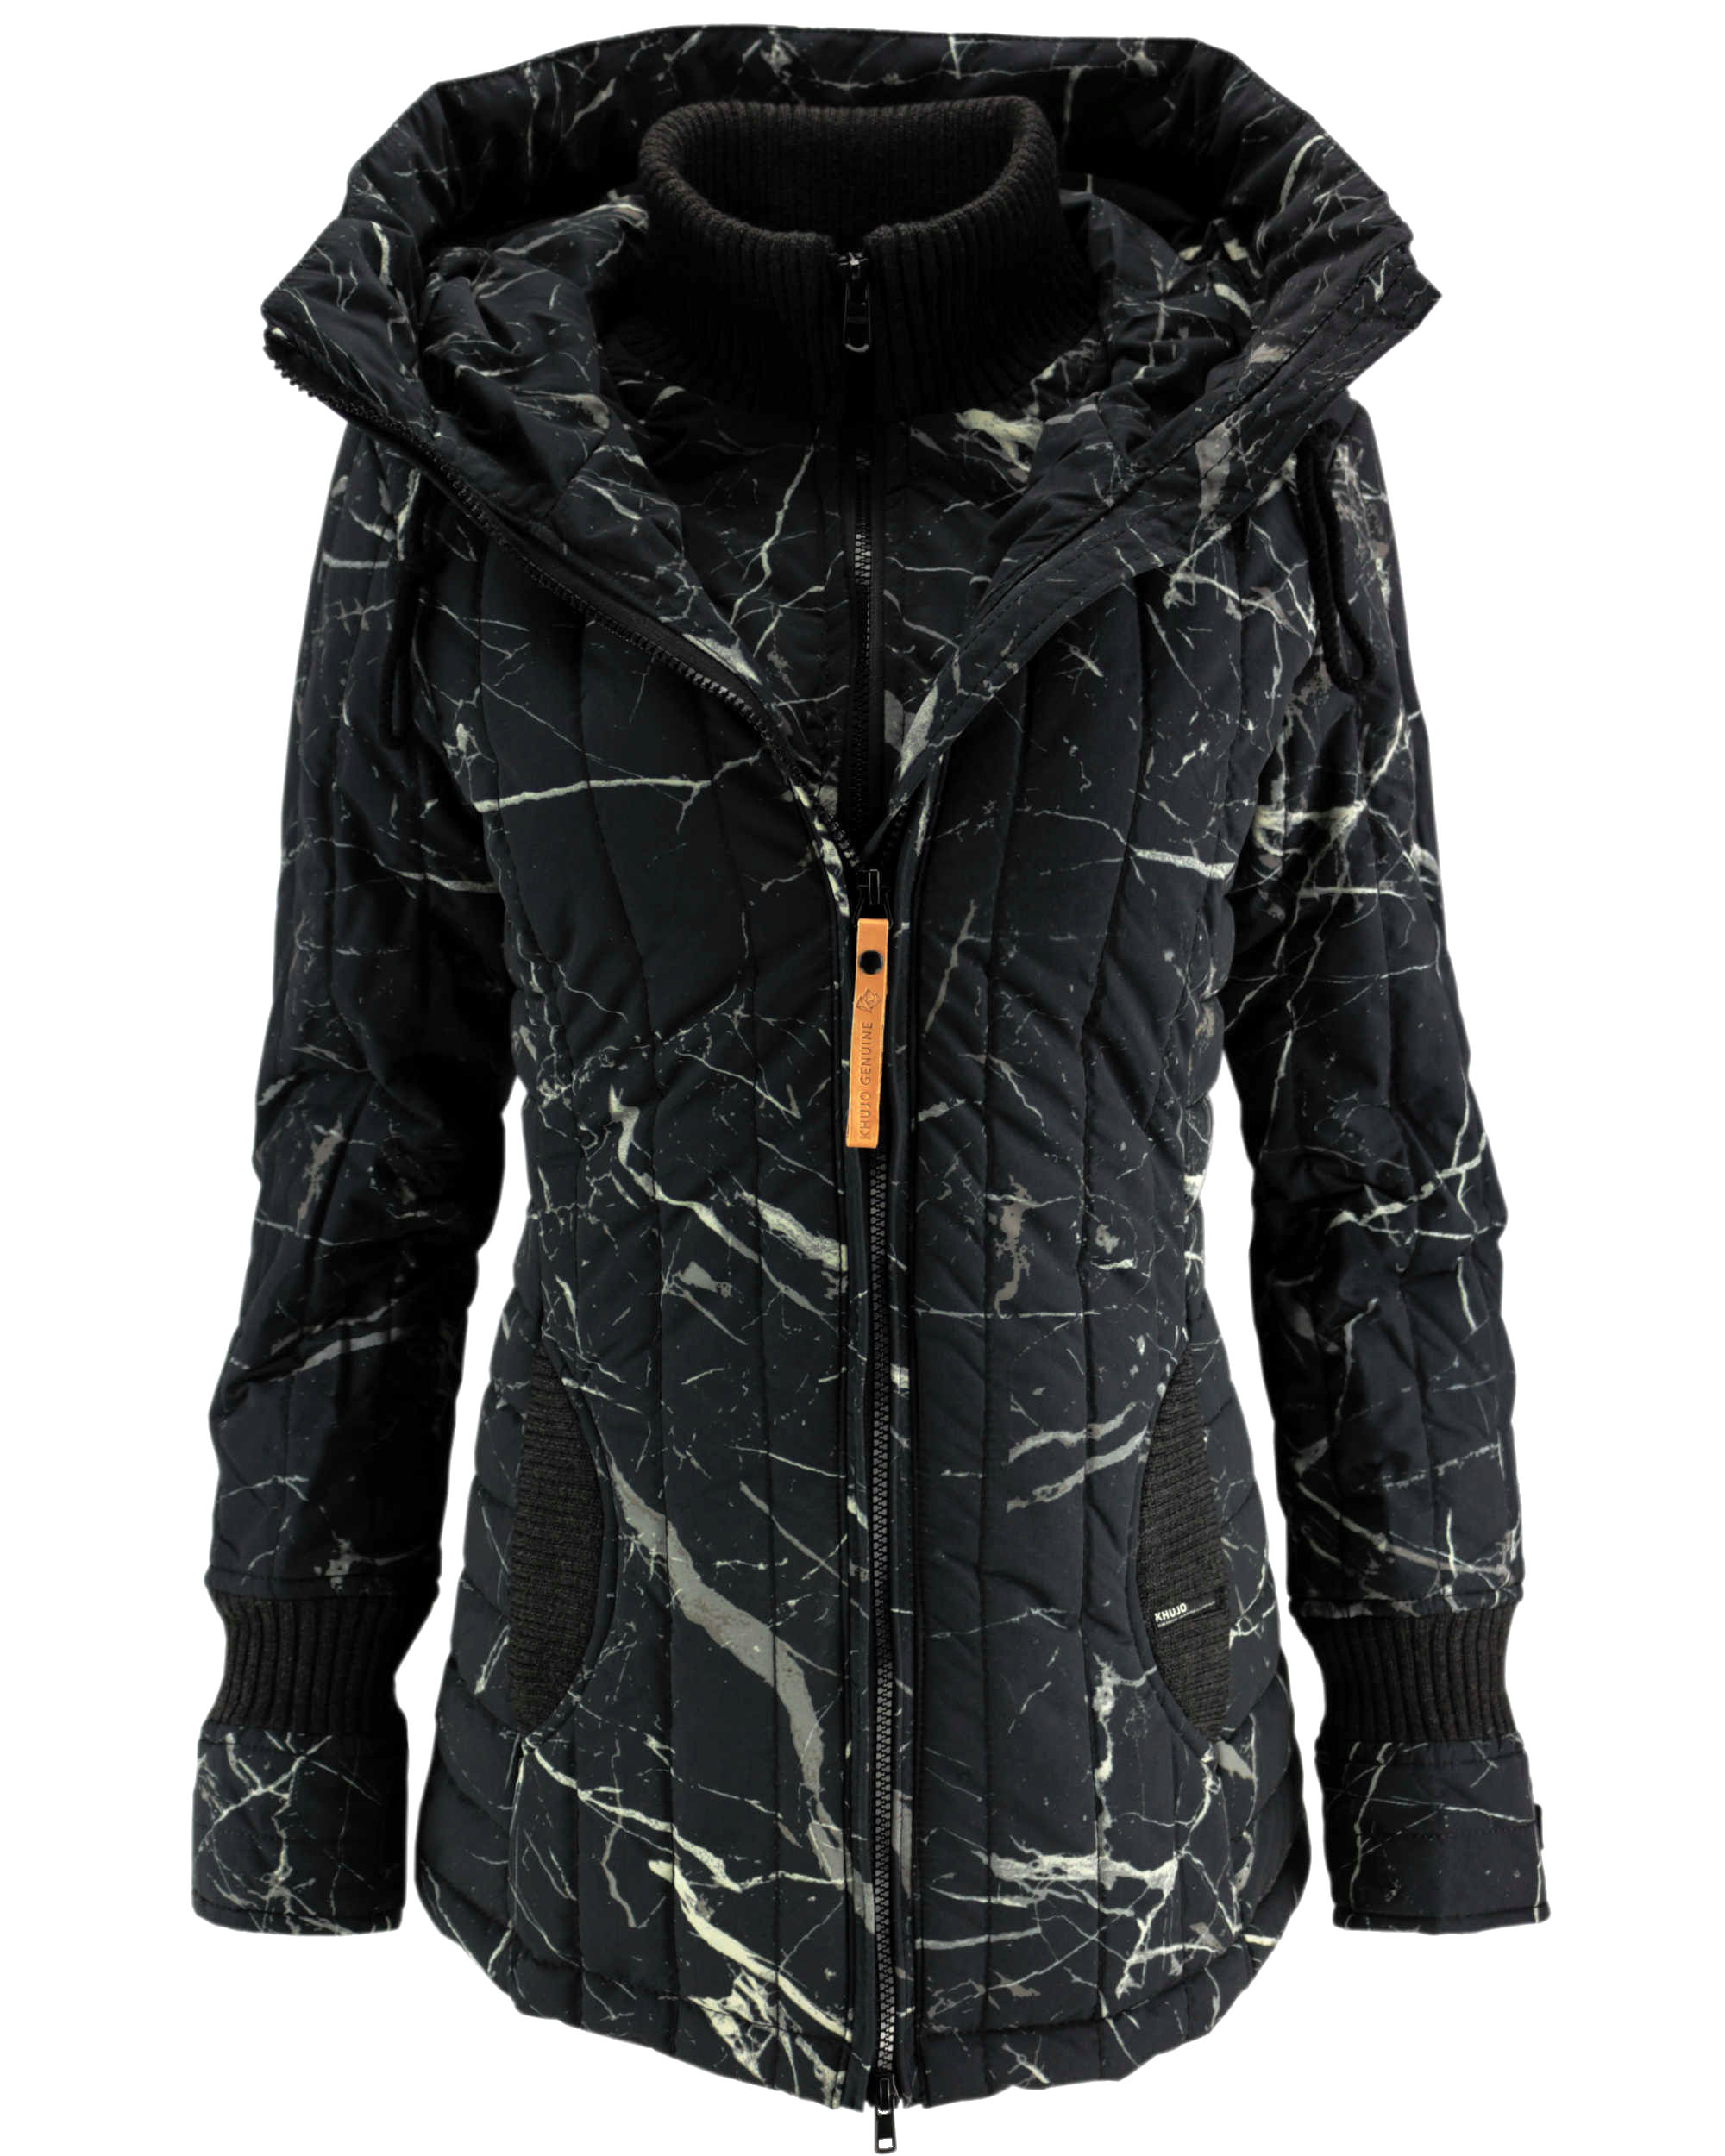 the best attitude e8a37 8a30c KHUJO Damen Winterjacke Jacke Mantel TWEETY PRIME Winter Parka Kapuze